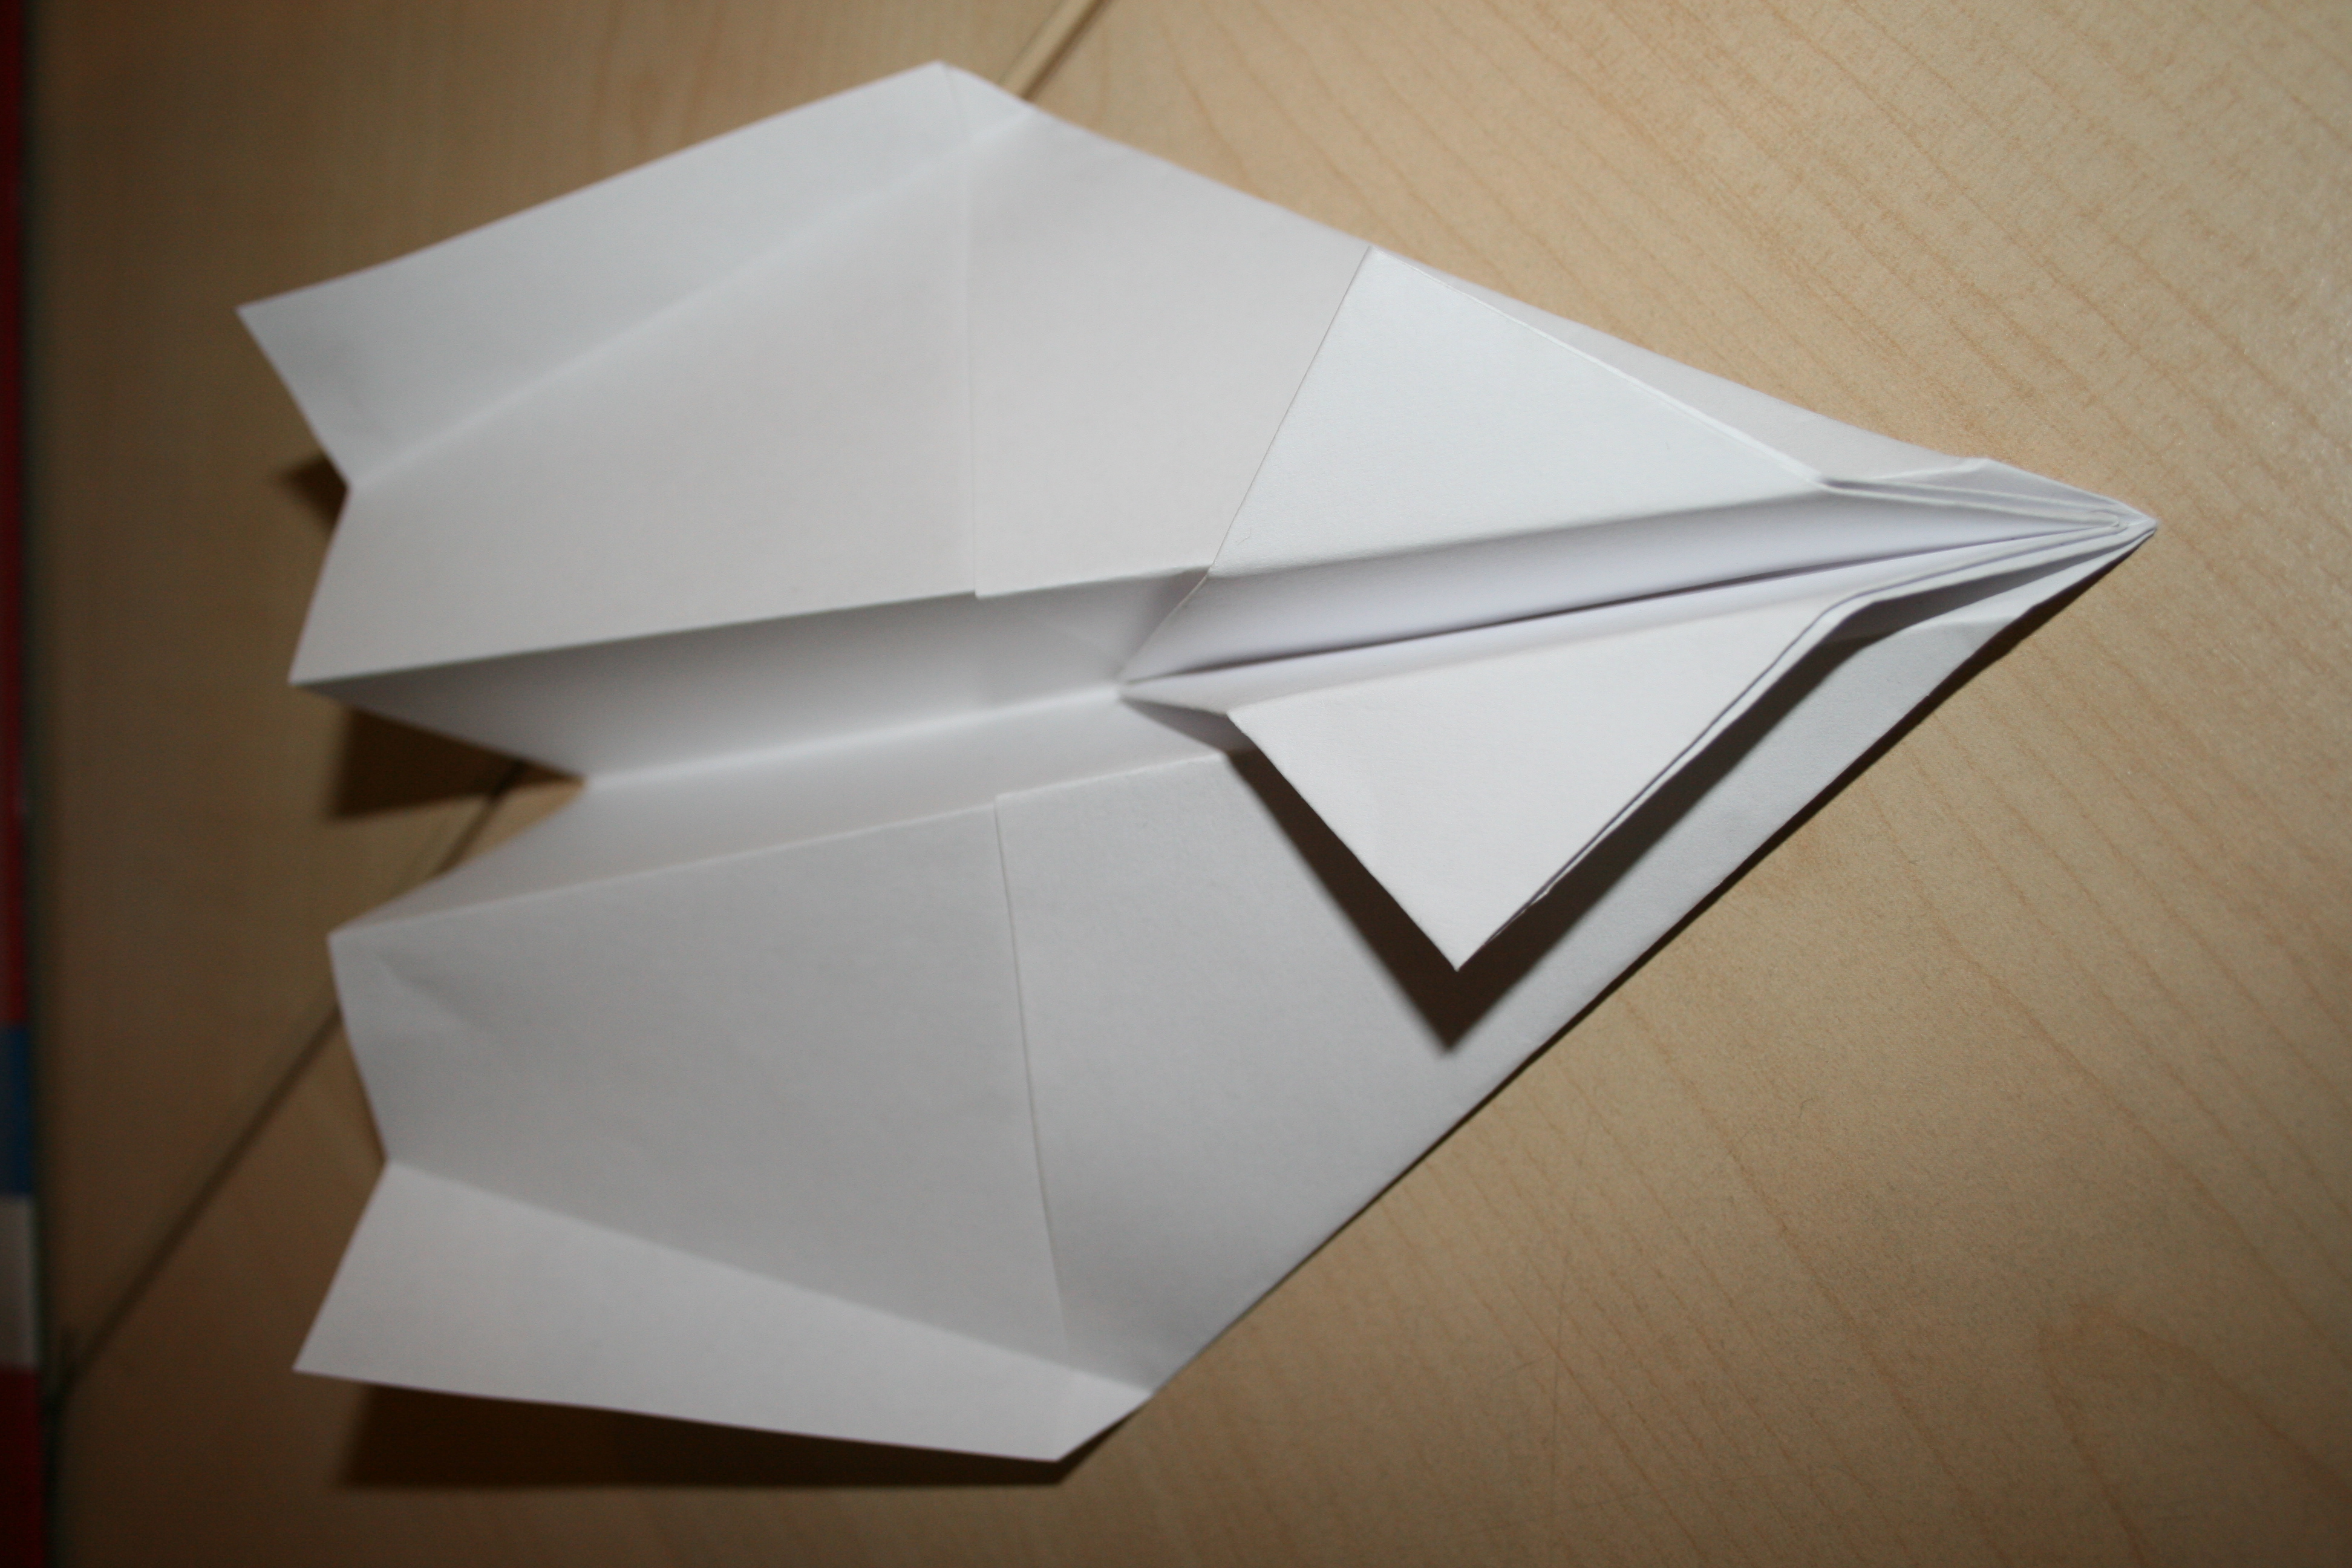 Free Printable Paper Airplane Templates http://www.tattoodonkey.com/-jigsaw-online-battle-of-gettysburg-puzzles-quotjigsaw-puzzle/psdgraphics.com*file*psd-jigsaw-icon.jpg/